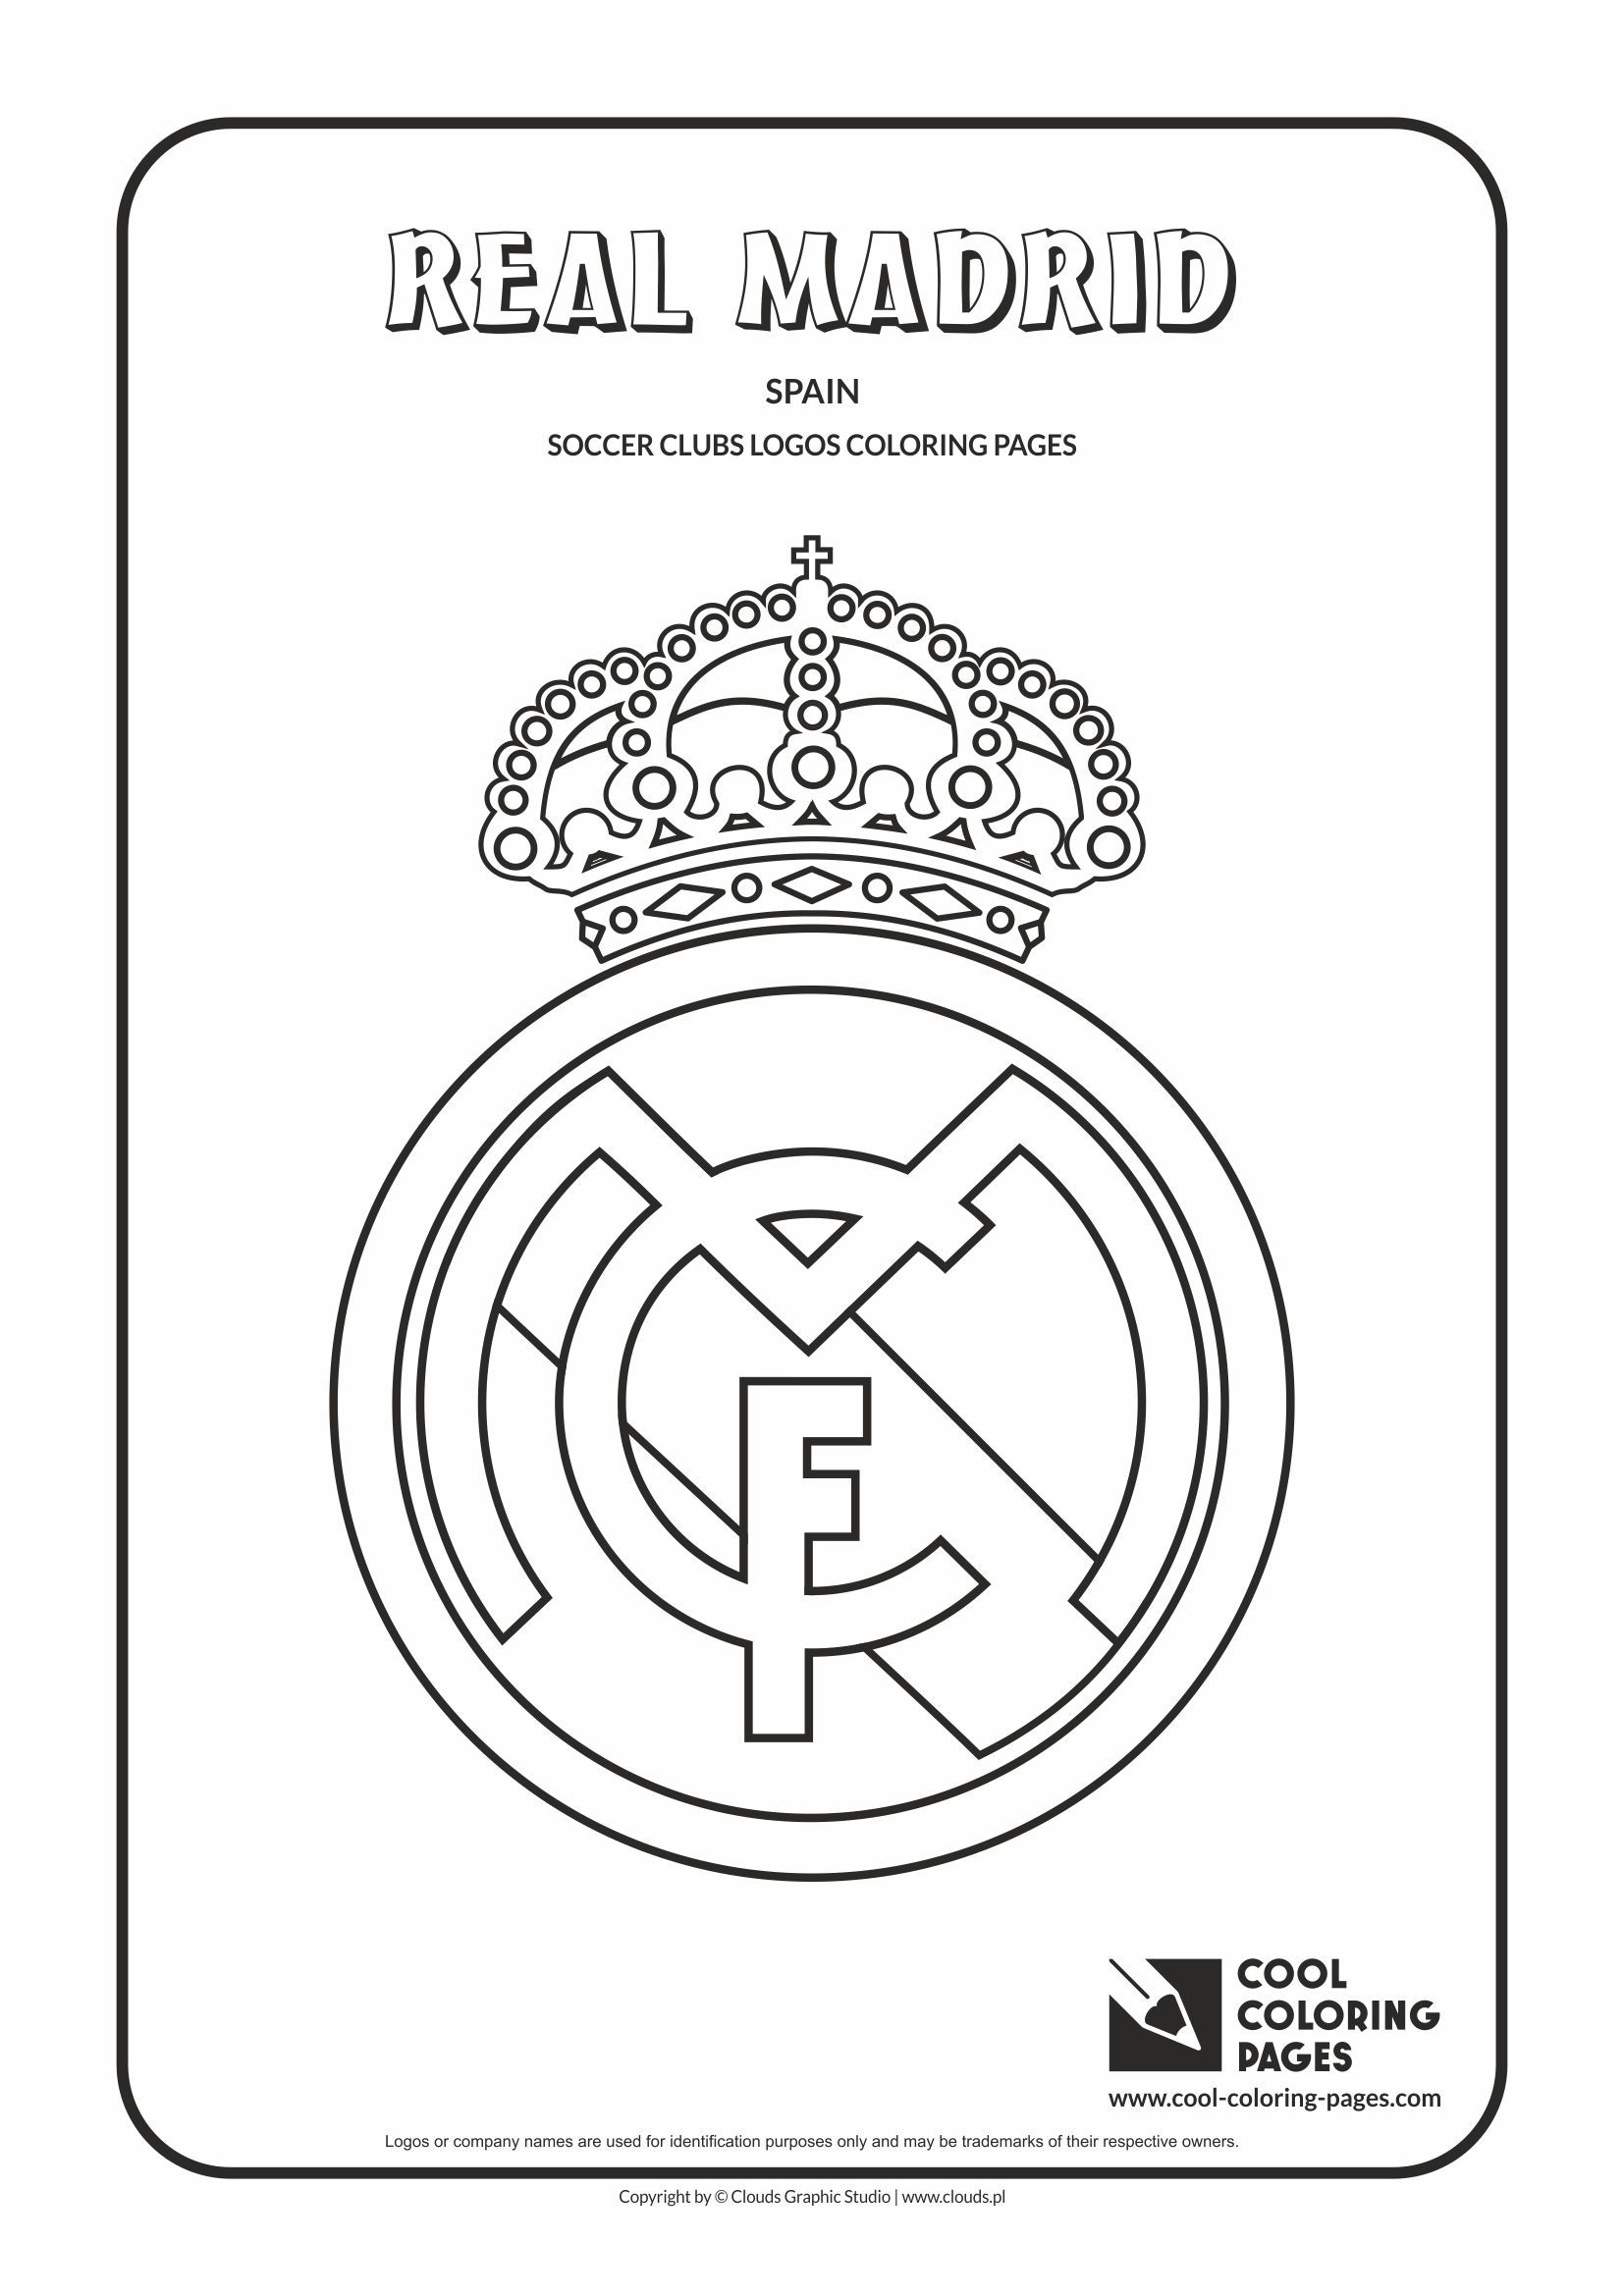 Cool Coloring Pages Others Real Madrid logo Coloring page with Real Madrid logo